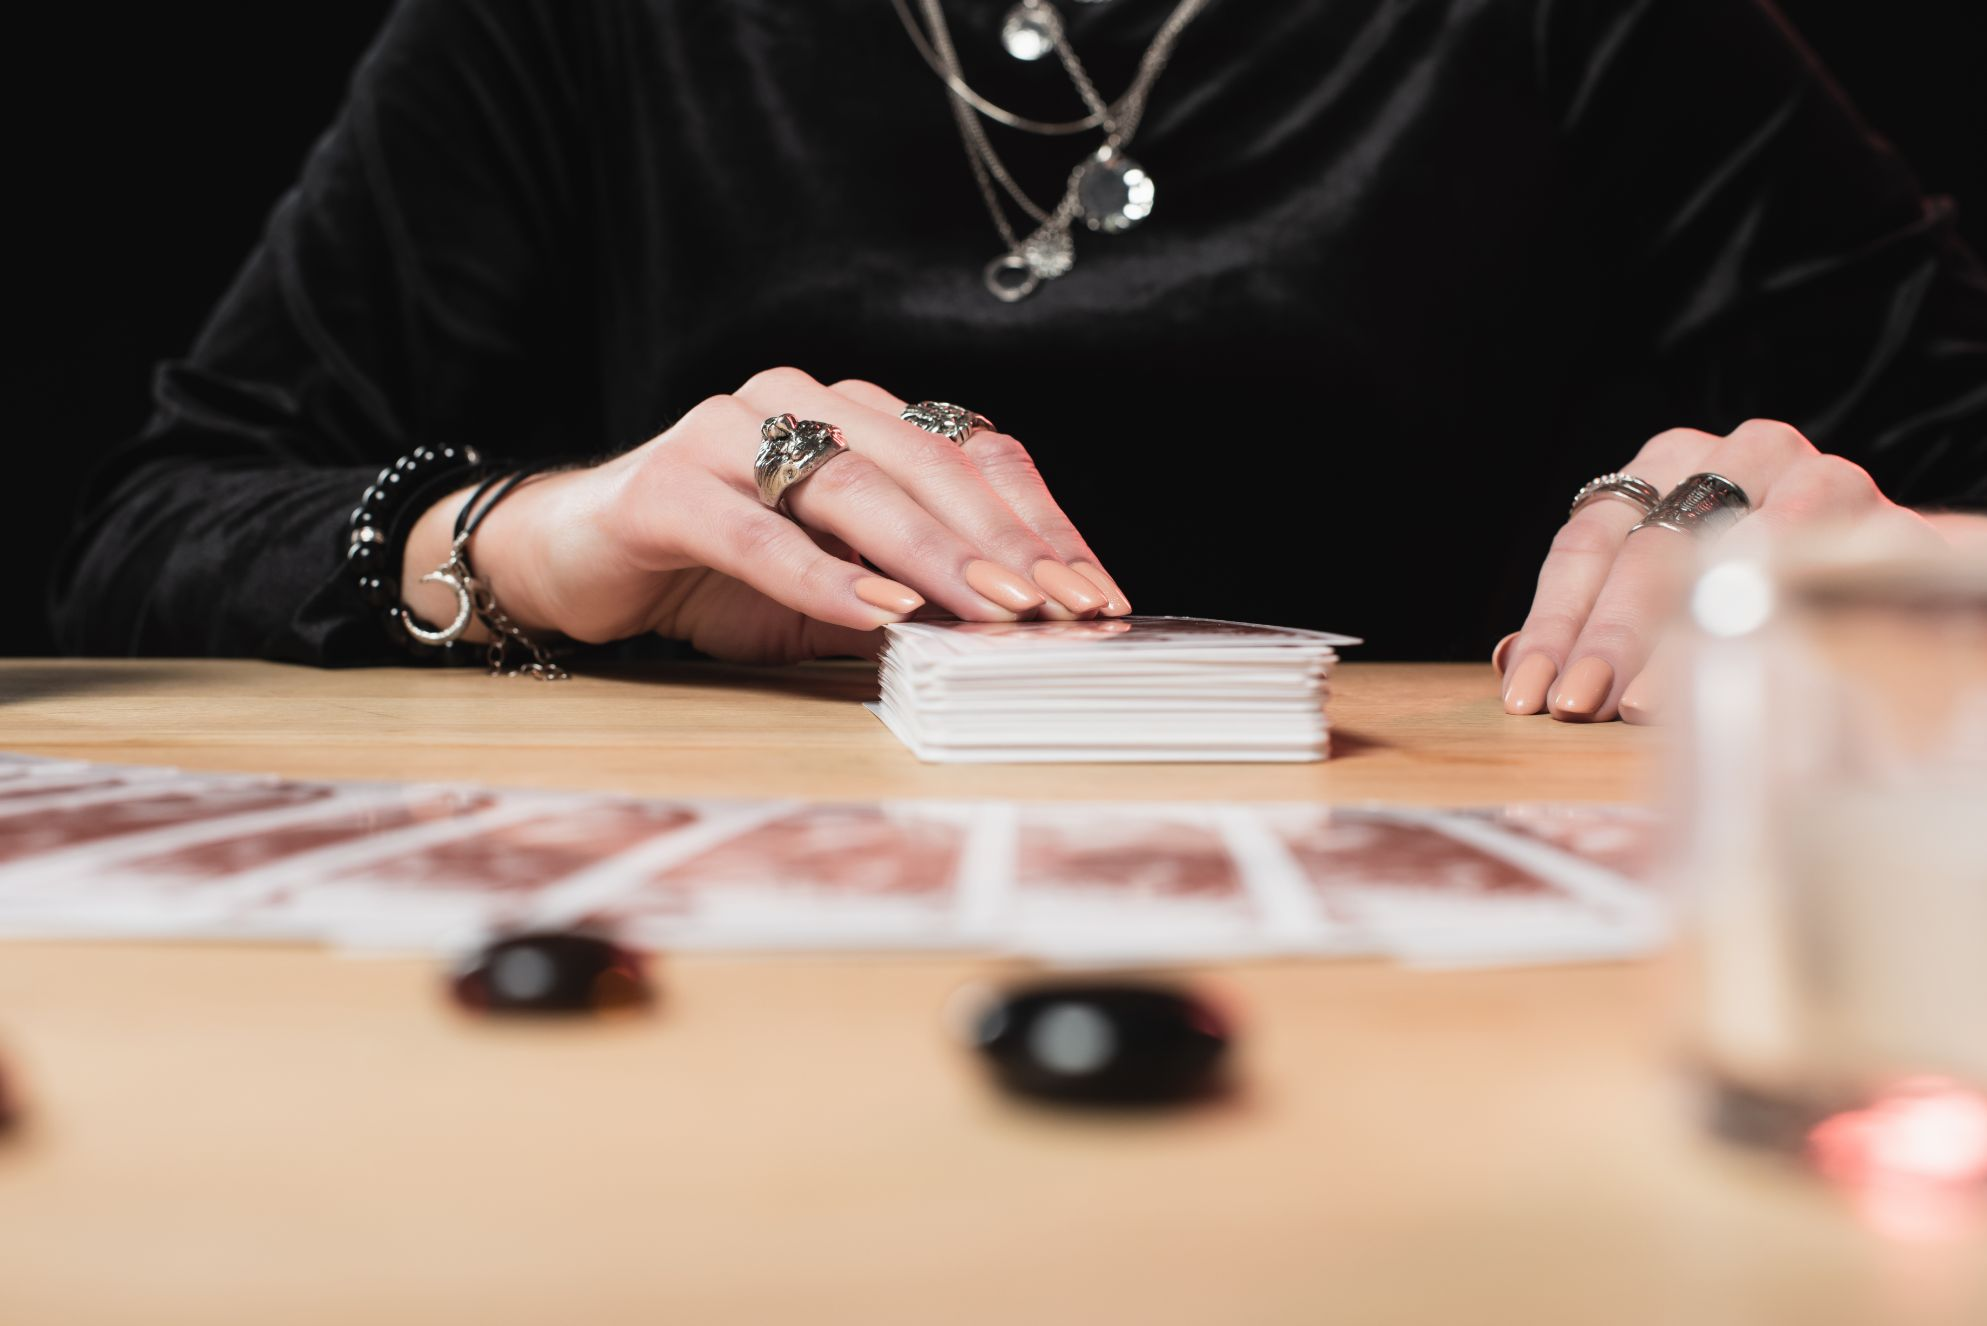 Does your love tarot reading resonate with you